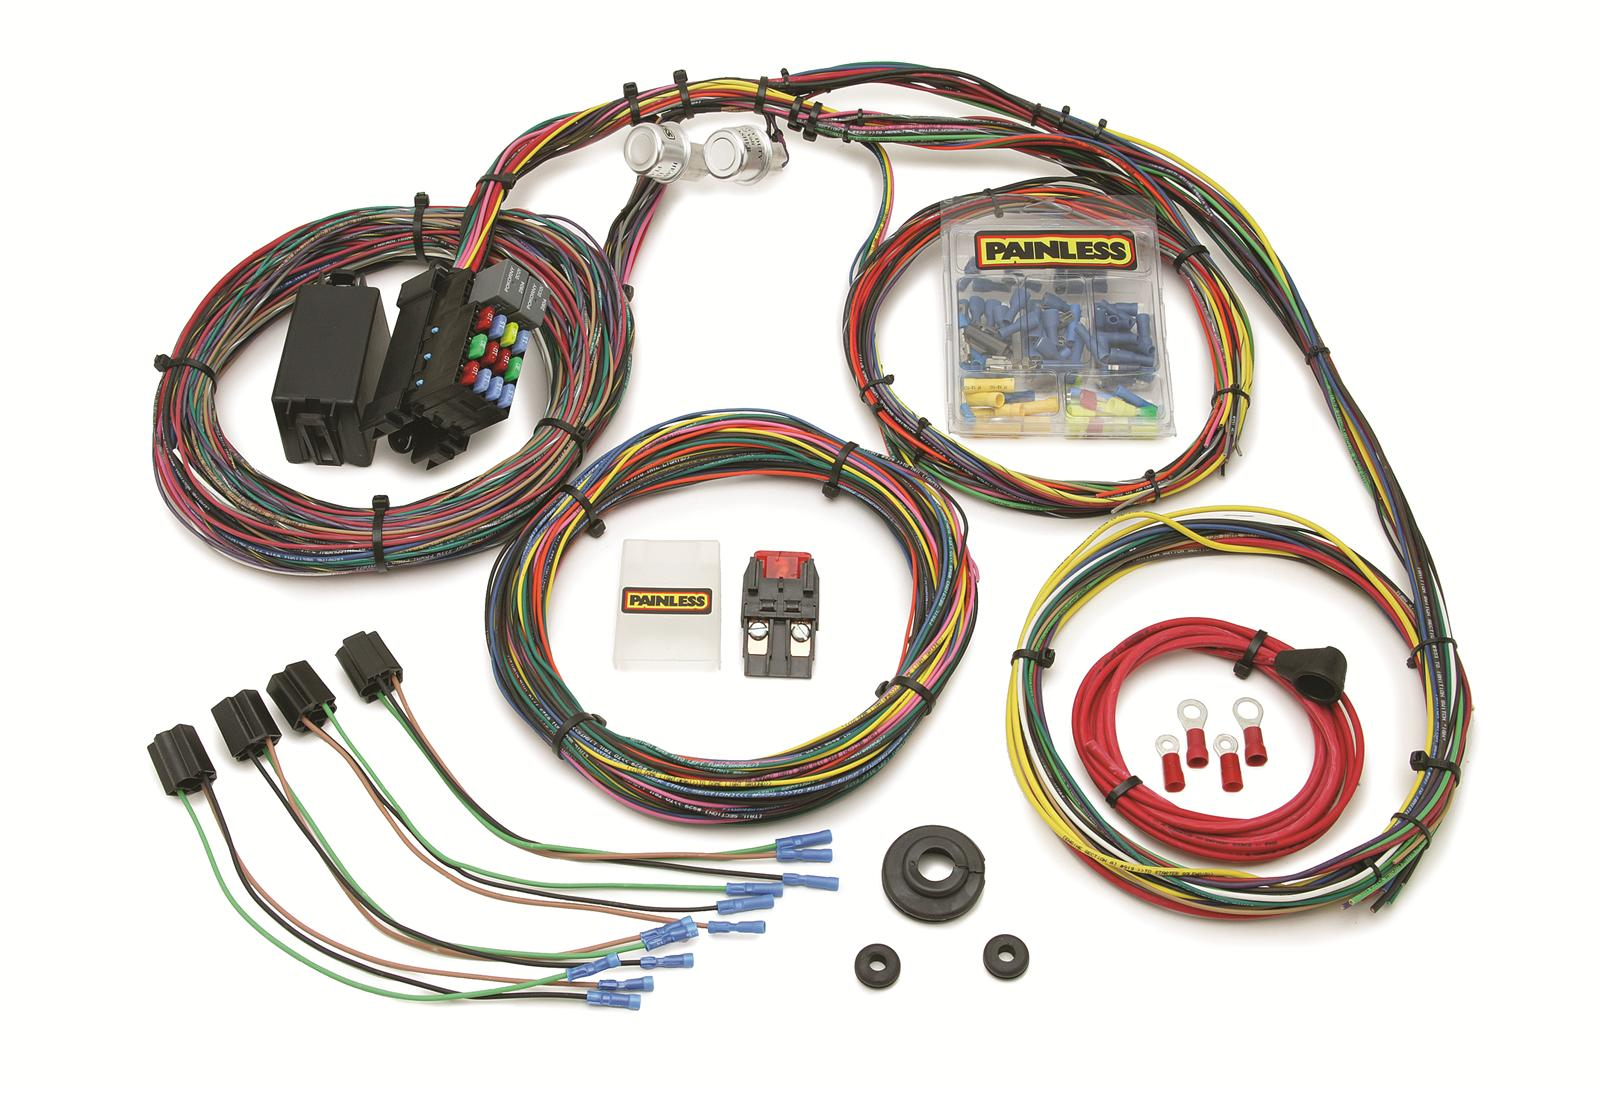 Miraculous Painless Performance 21 Circuit Mopar Color Coded Universal Wiring Wiring Digital Resources Funapmognl